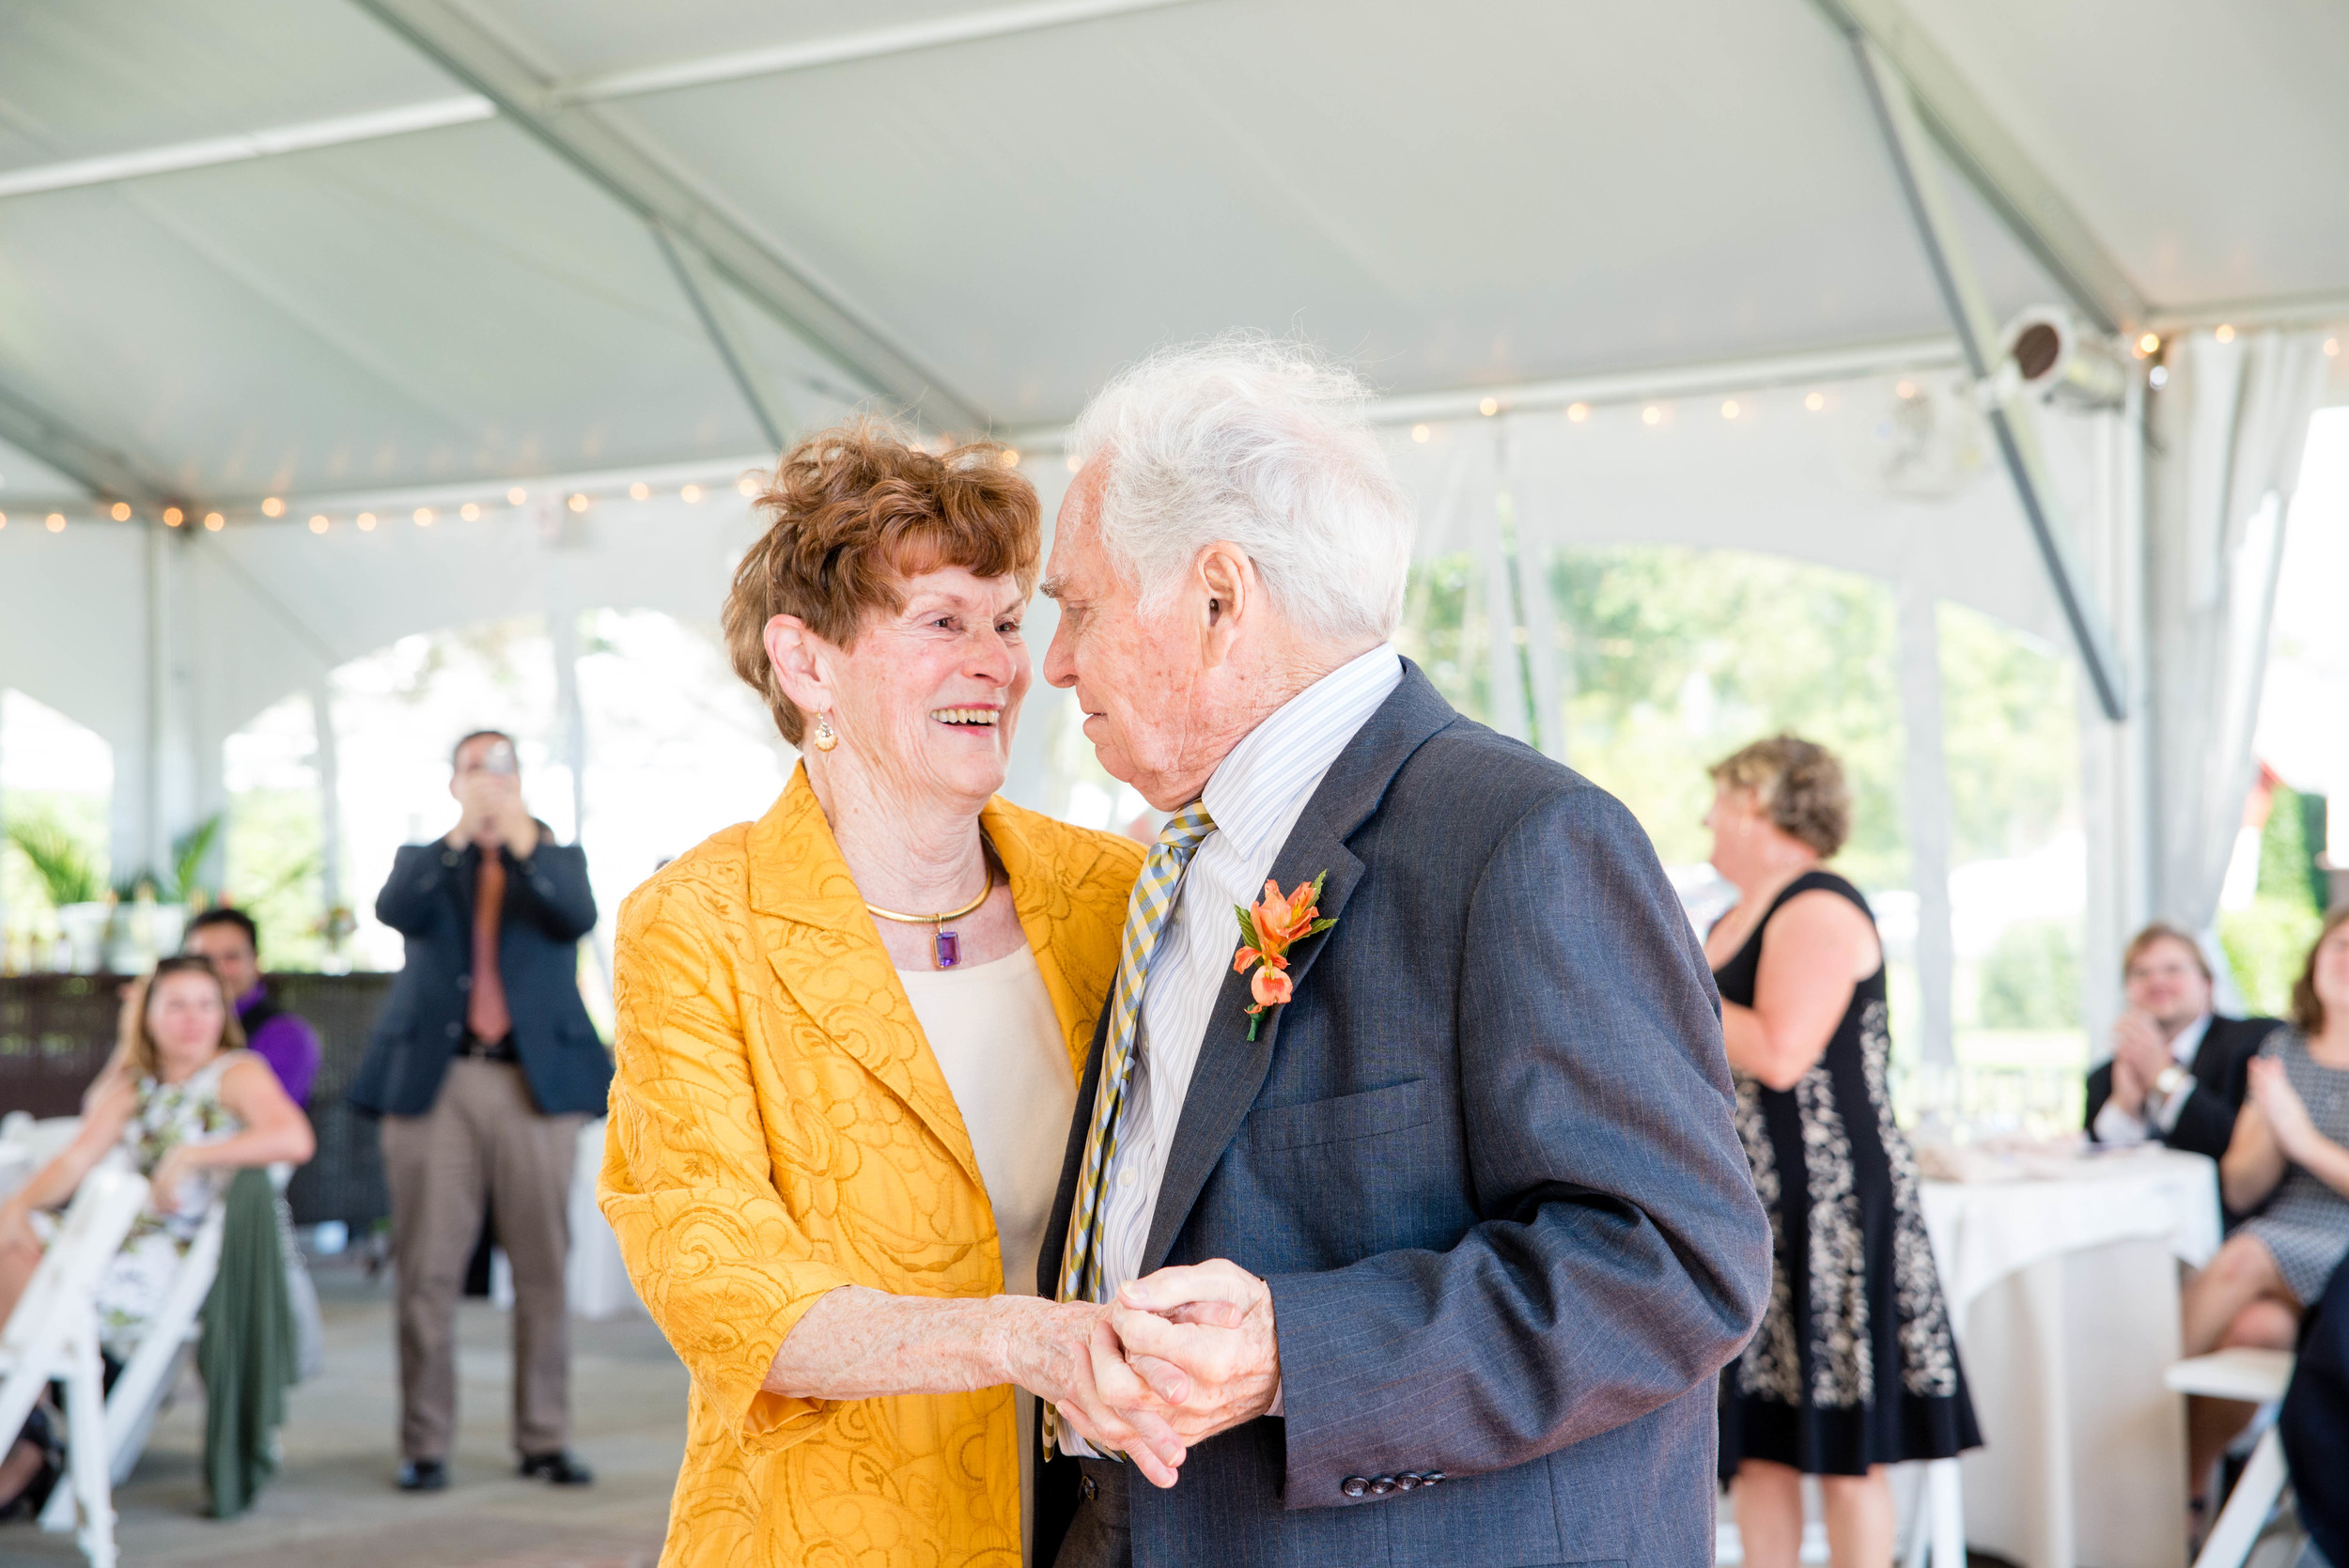 Ok, so these are Kelsey's grandparents. They were the last couple dancing for the anniversary dance.  Please excuse the amount of picture of them I'm about to post. I just can't help myself. They are the cutest.